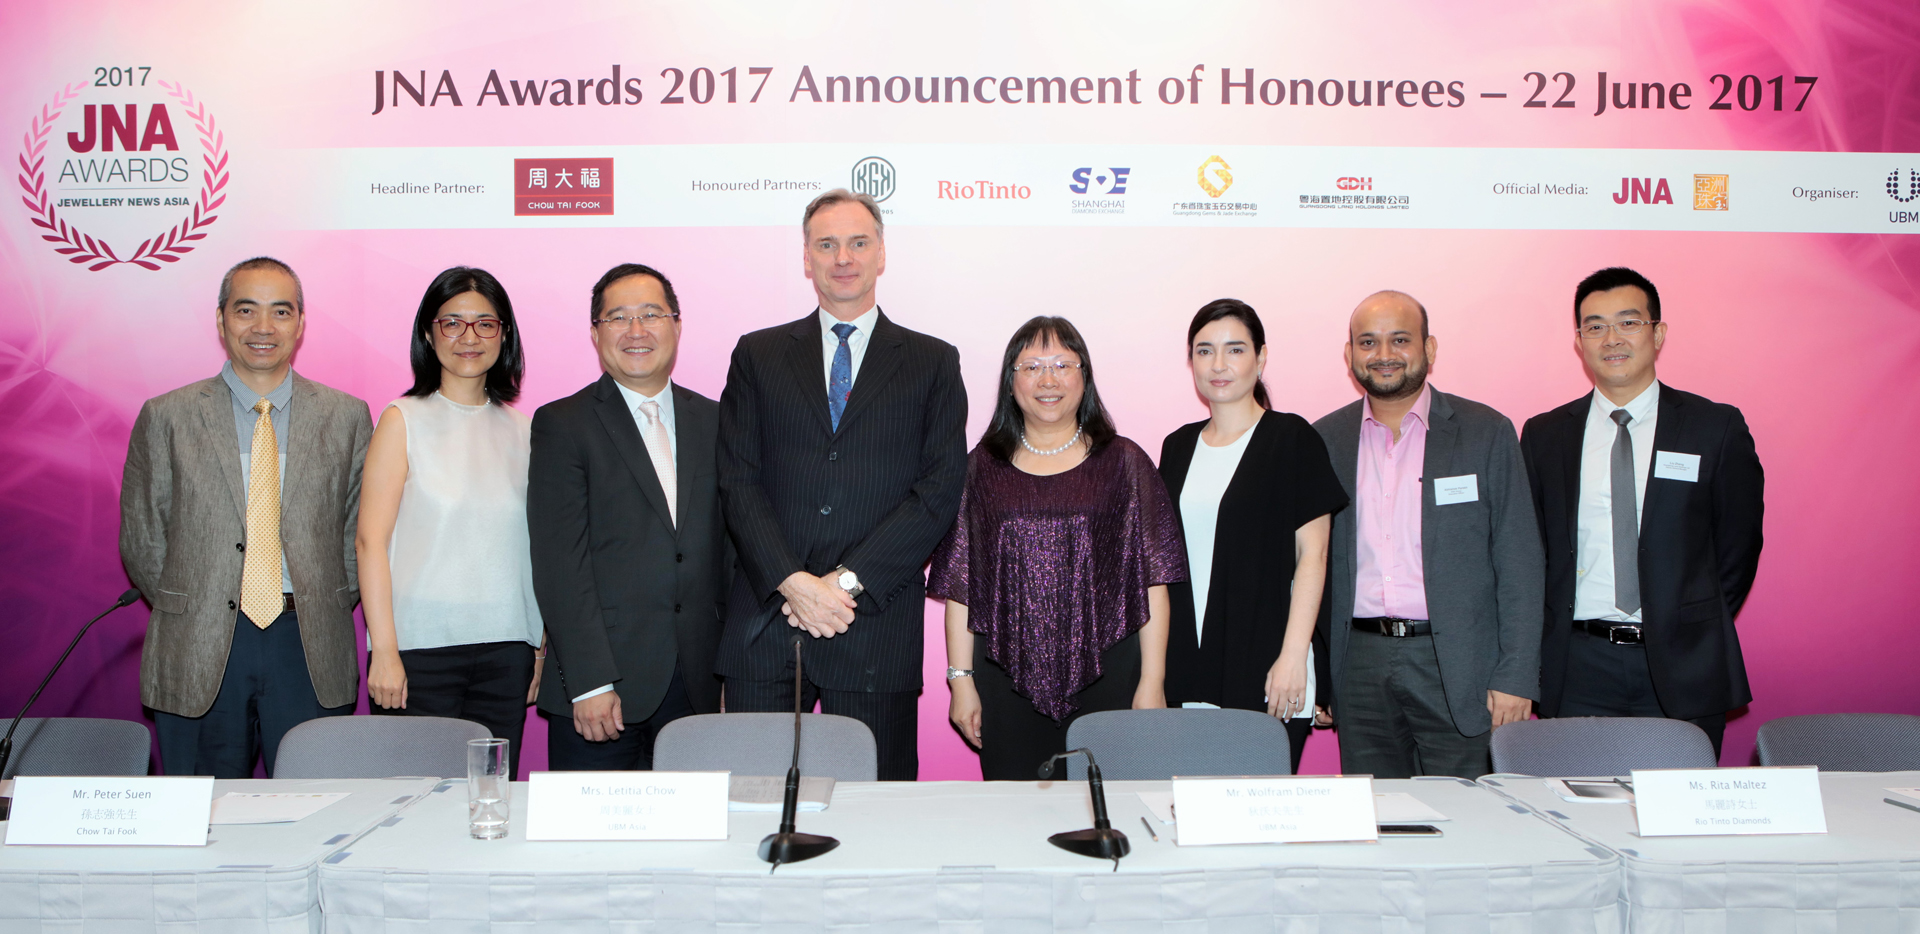 (From left) Guangdong Gems & Jade Exchange; Shanghai Diamond Exchange; Chow Tai Fook Jewellery Group; UBM Asia; UBM Asia; Rio Tinto Diamonds; KGK Group; Guangdong Land Holdings